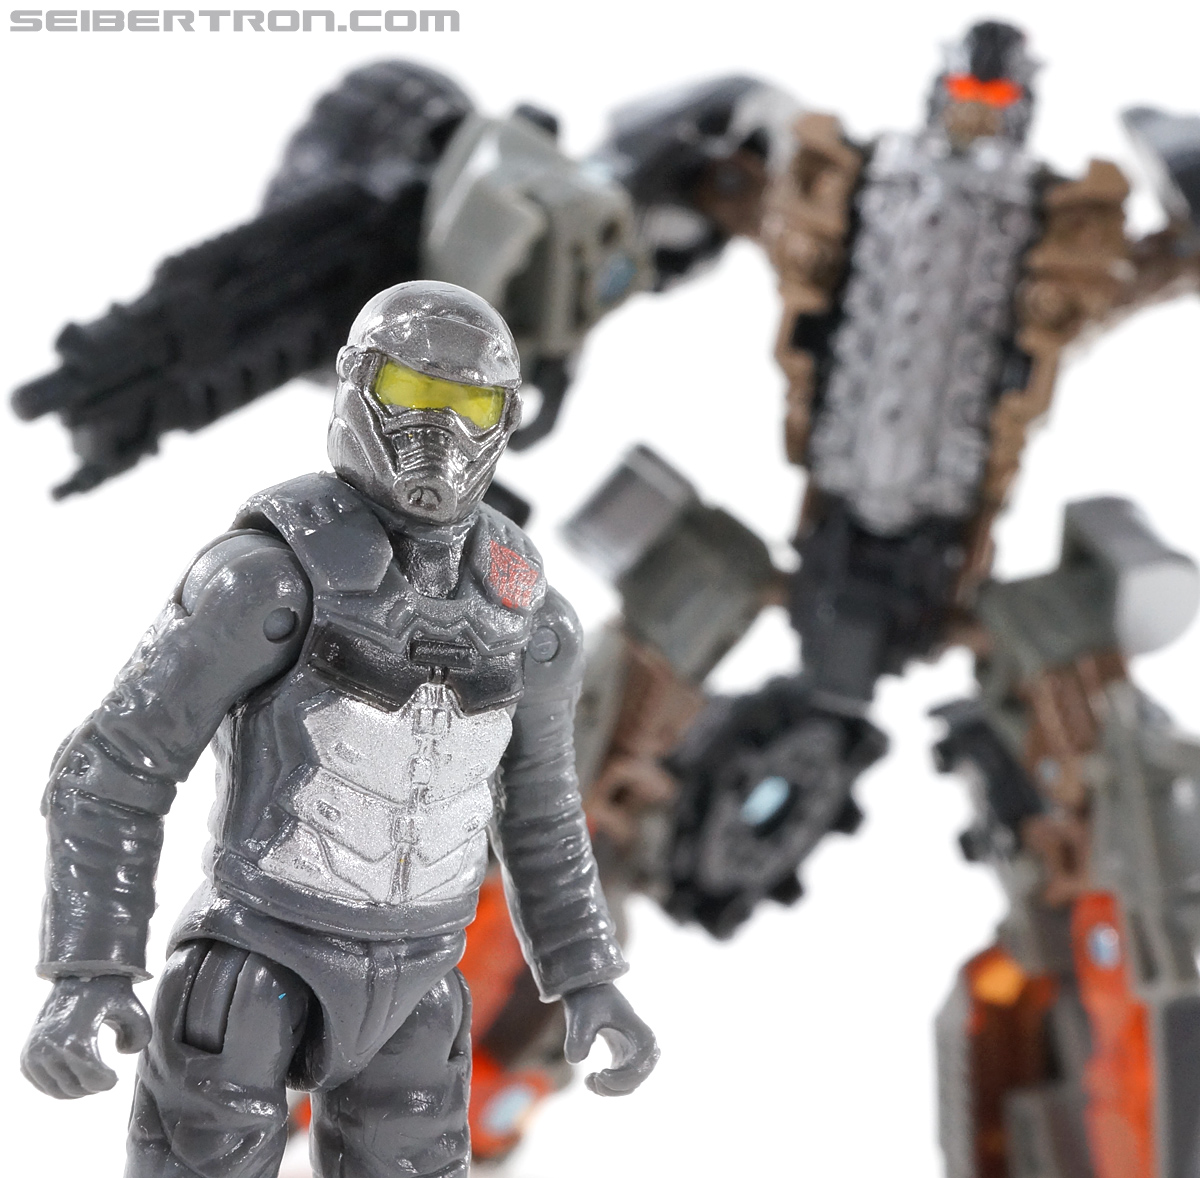 Transformers Dark of the Moon Spike Witwicky (Image #67 of 70)